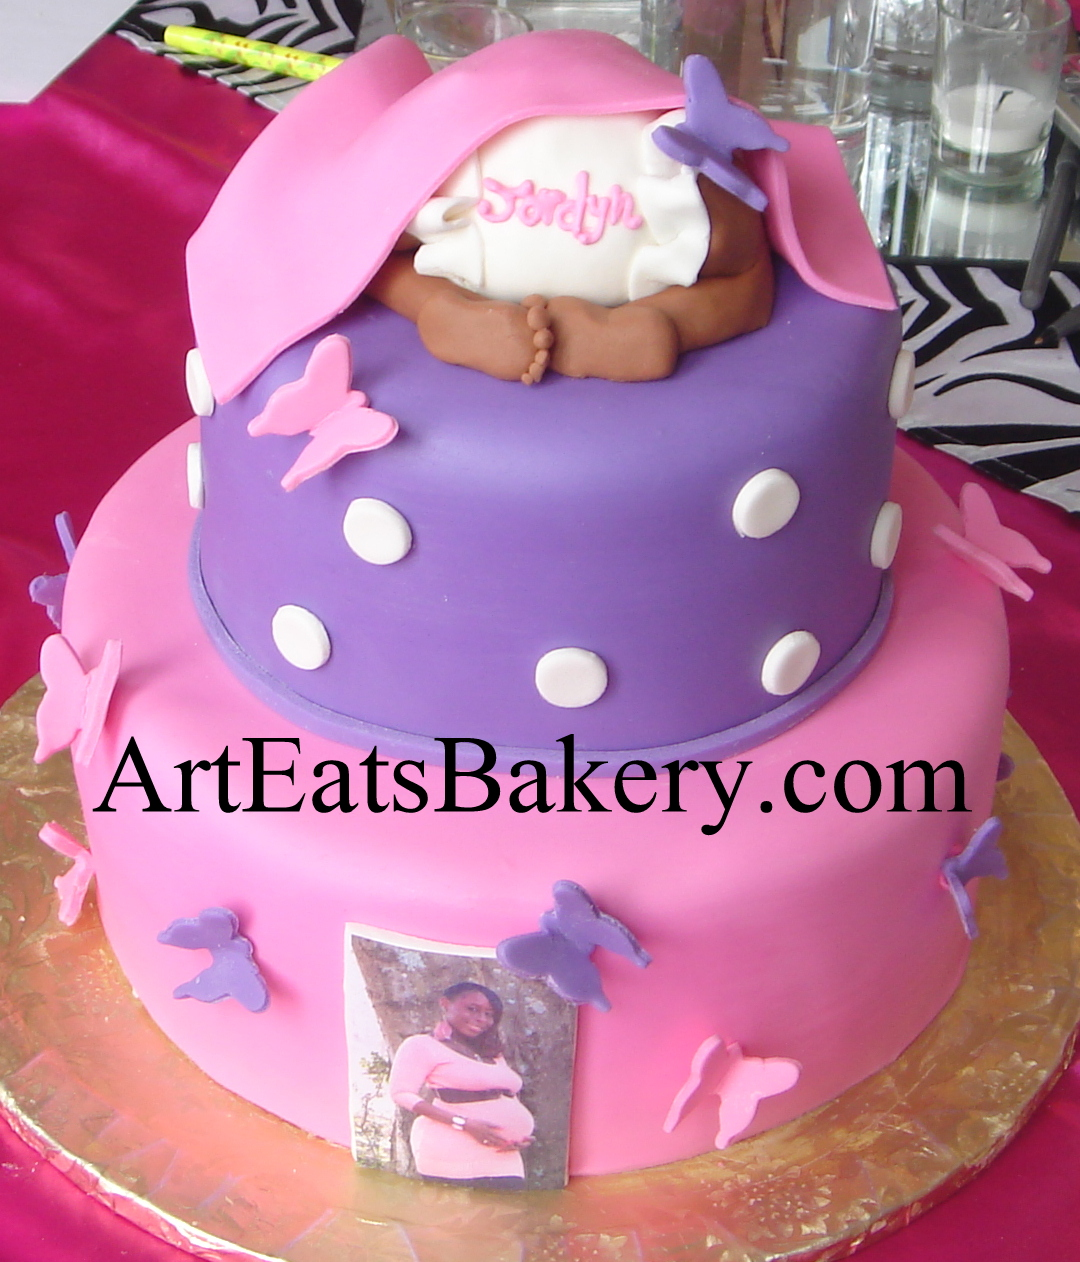 Pink and purple fondant butterflies custom creative baby shower cake with baby under blanket topper.jpg